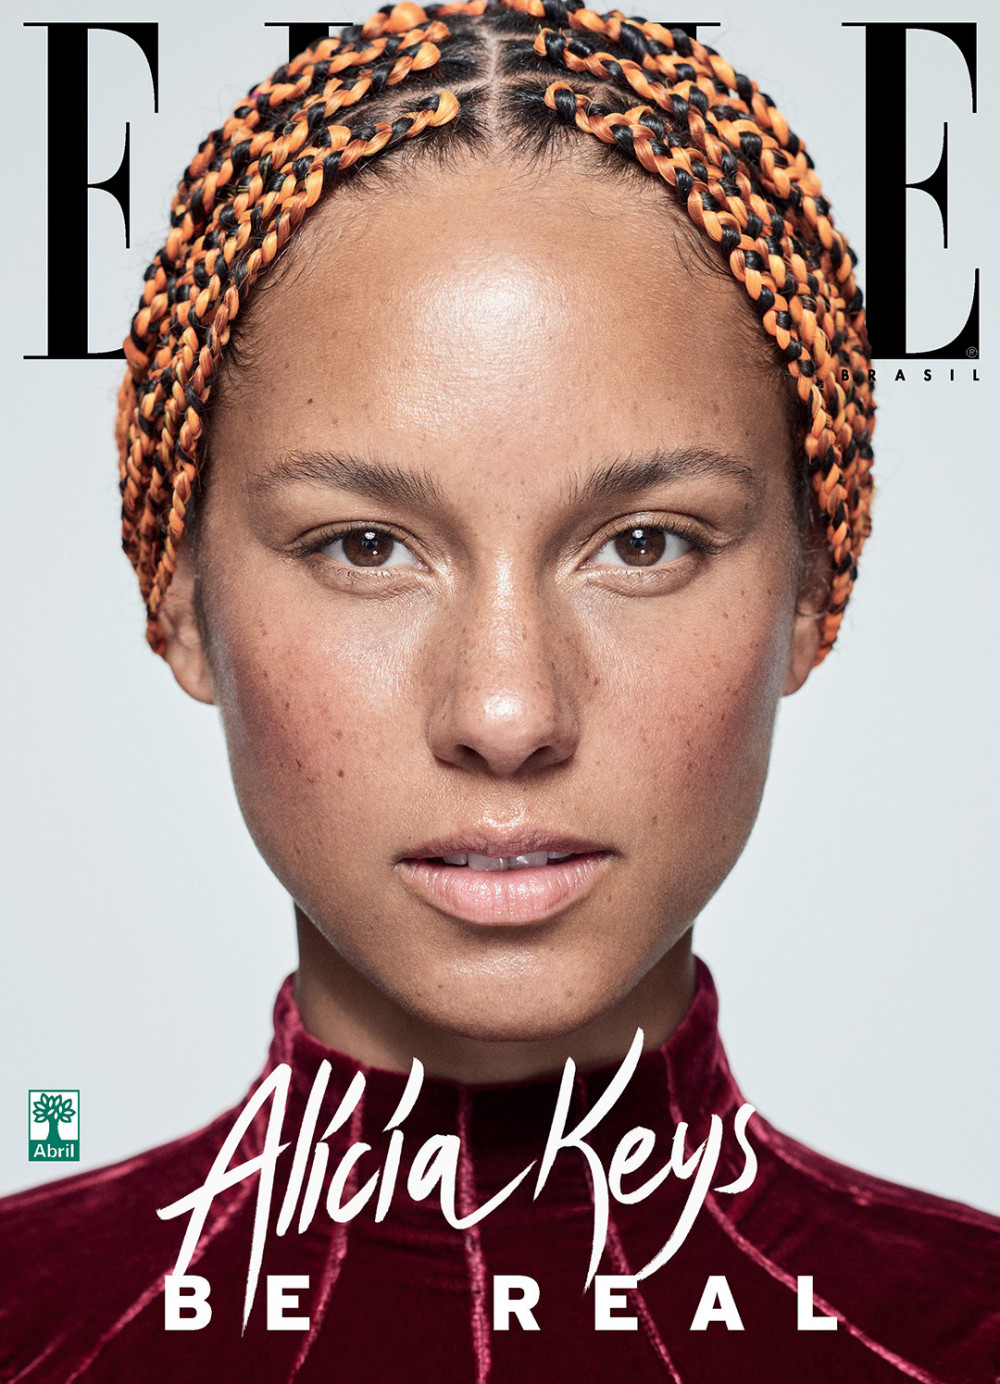 alicia keys Listen to the biggest hits from alicia keys, including no one, fallin', girl on fire, and more  check it out on slacker radio, on free internet stations like the twenty: hunger games, maroon 5: dna, rock in rio radio too.